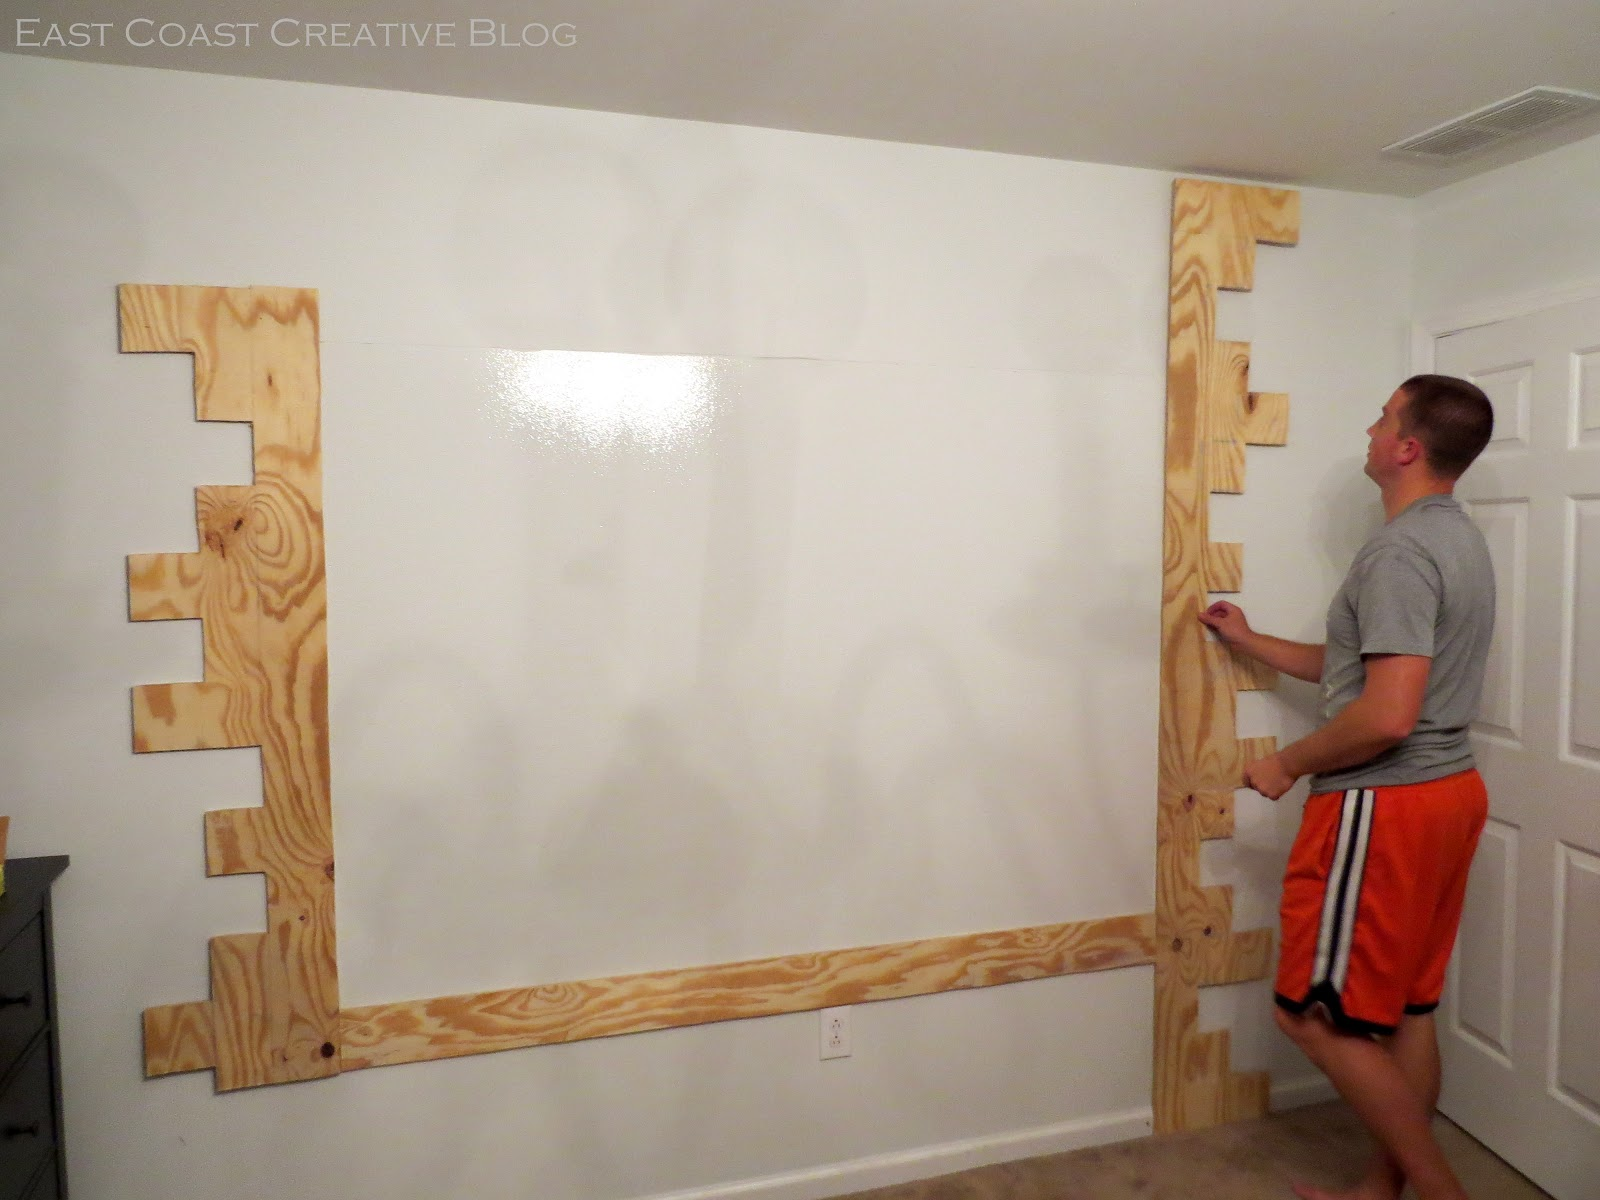 dry erase wall paint ideapaint how to paint whiteboard wall